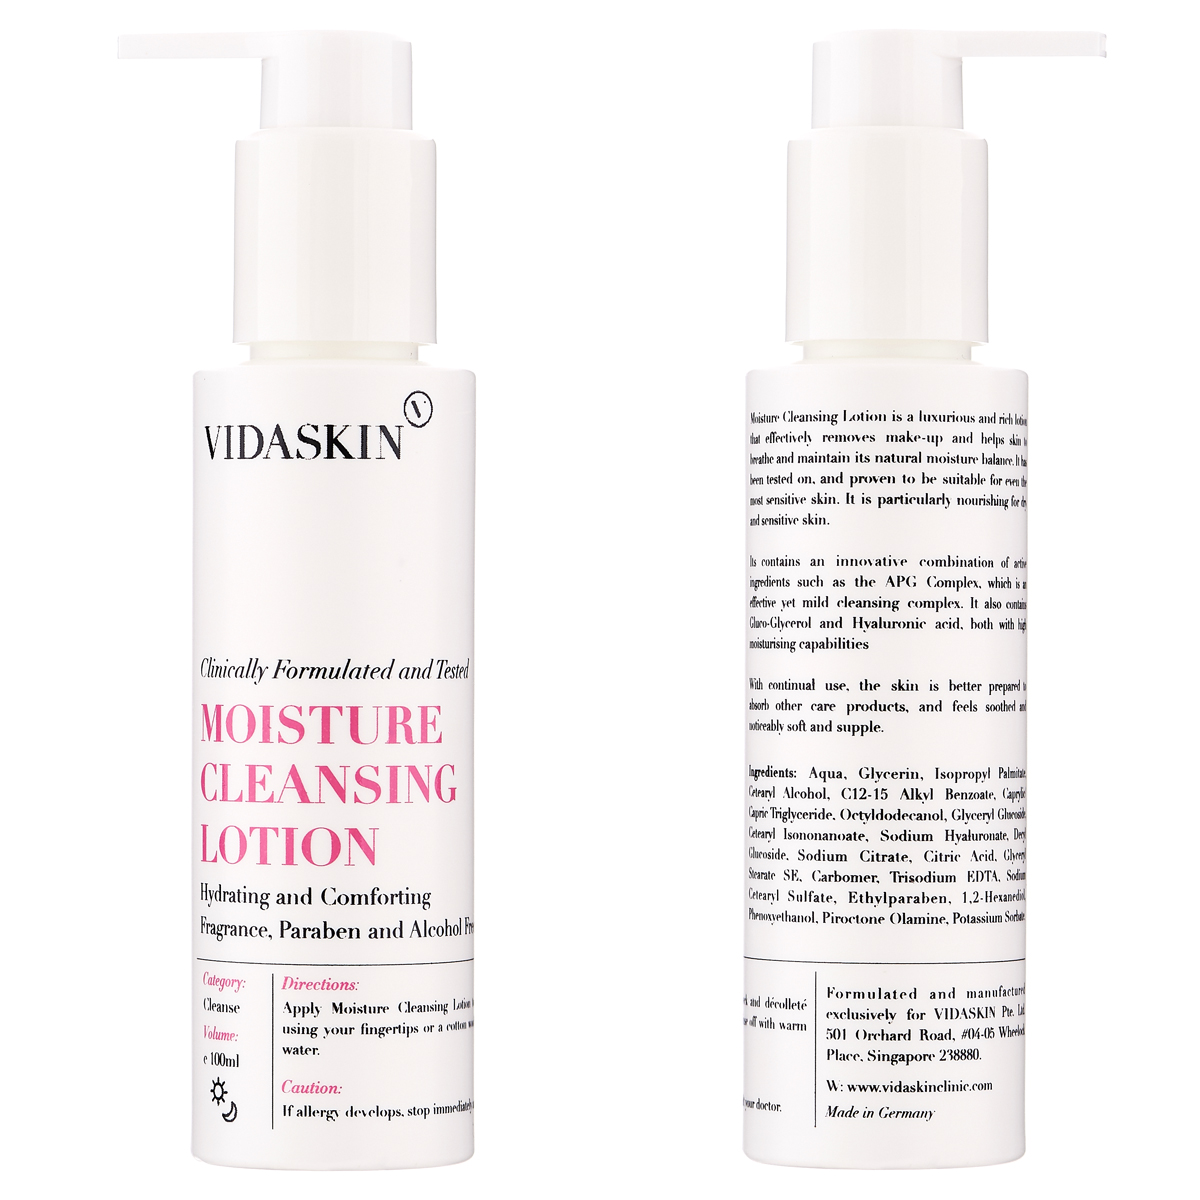 Moisture Cleansing Lotion